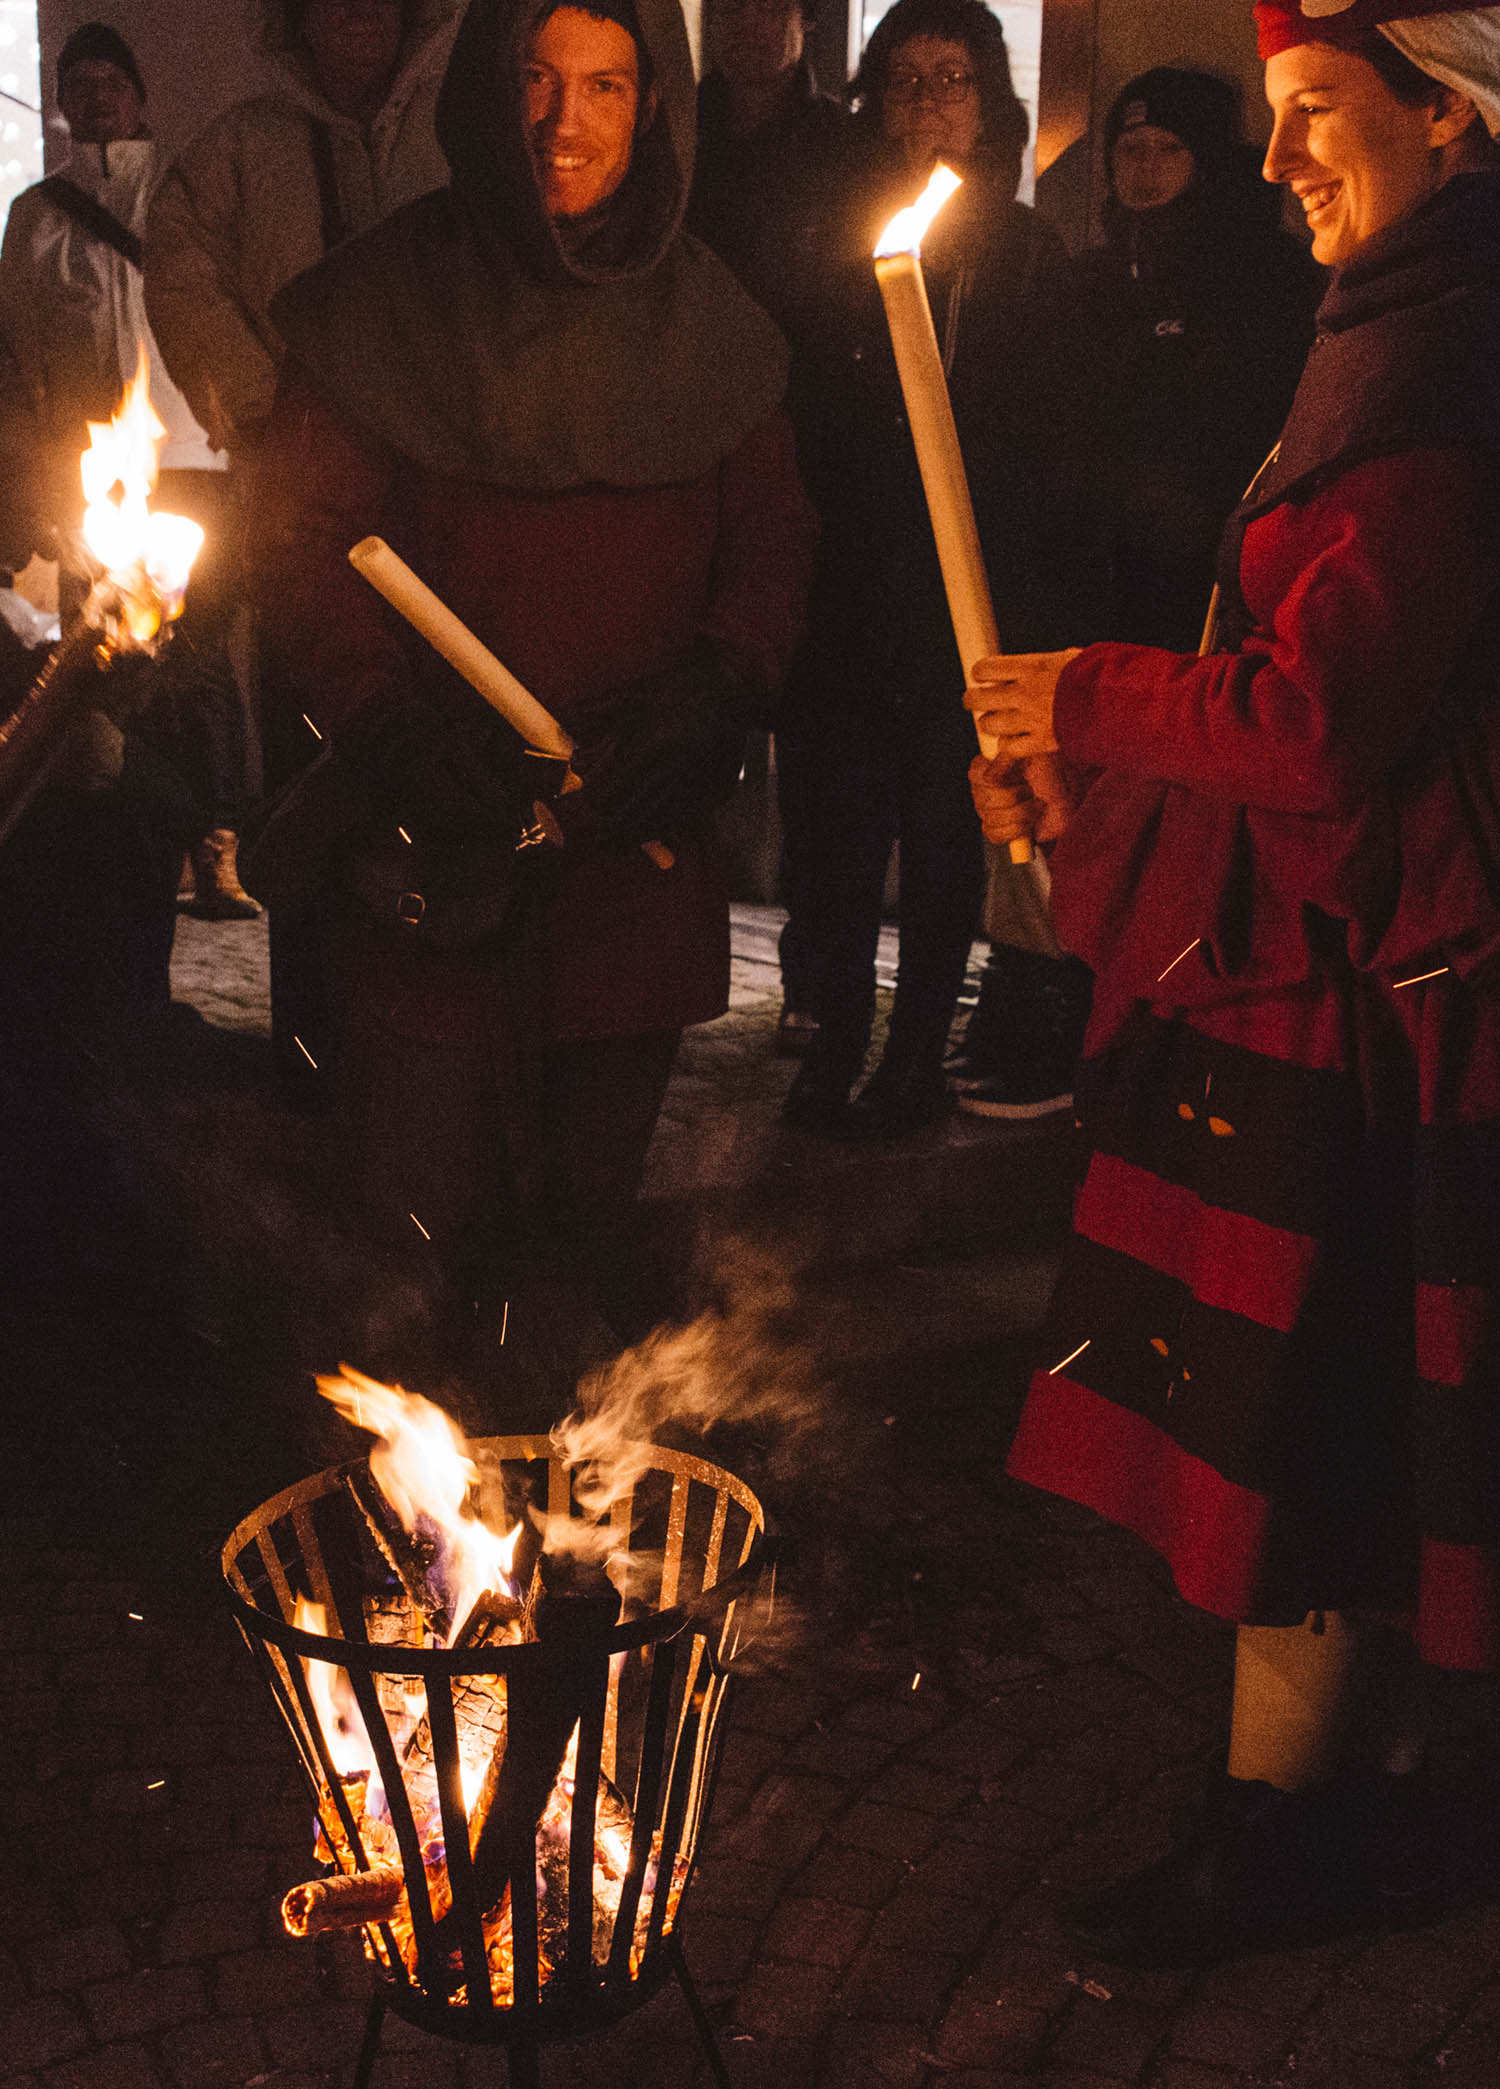 Torchlight procession in Visby